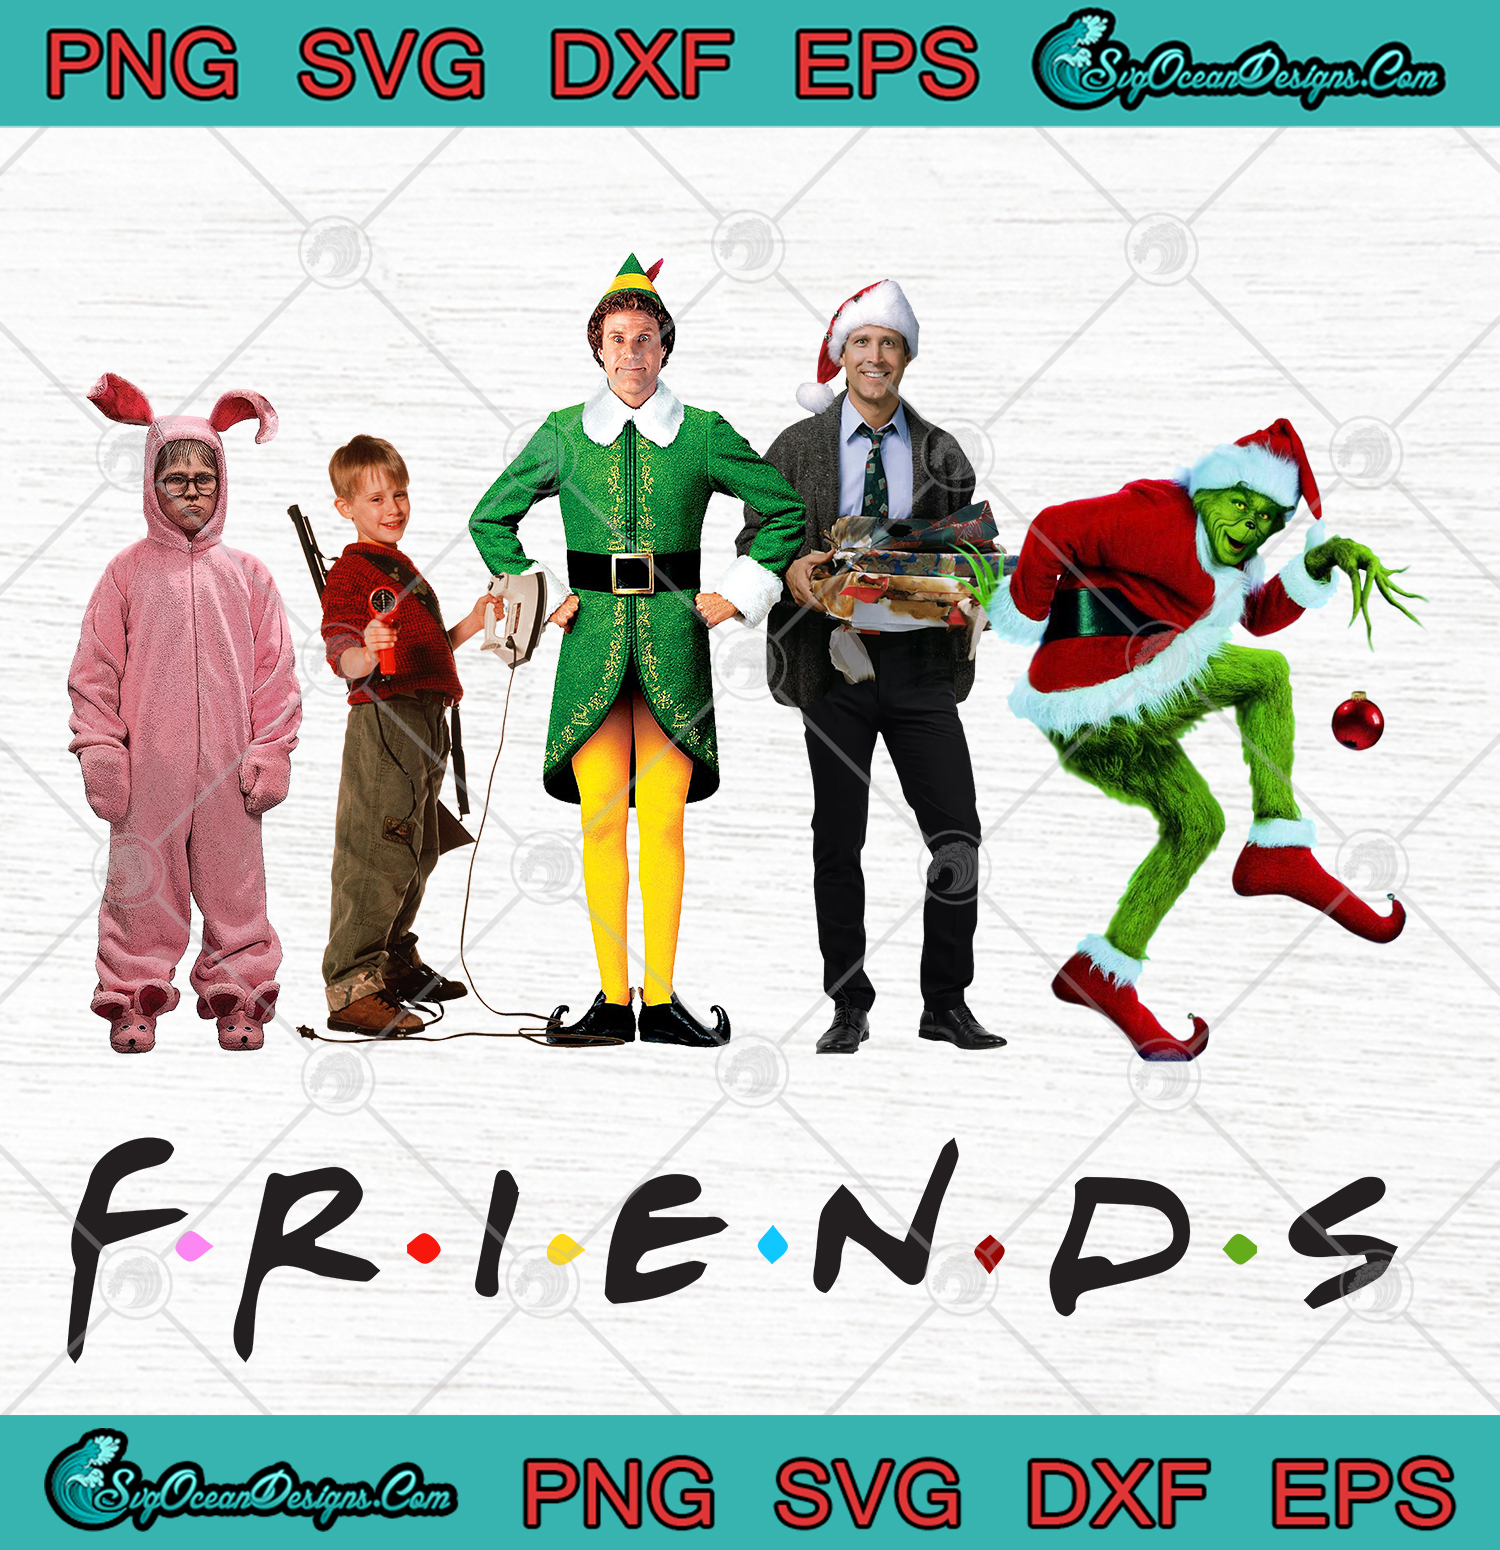 FRIENDS Christmas Movie Characters SVG PNG EPS DXF ... (1500 x 1550 Pixel)